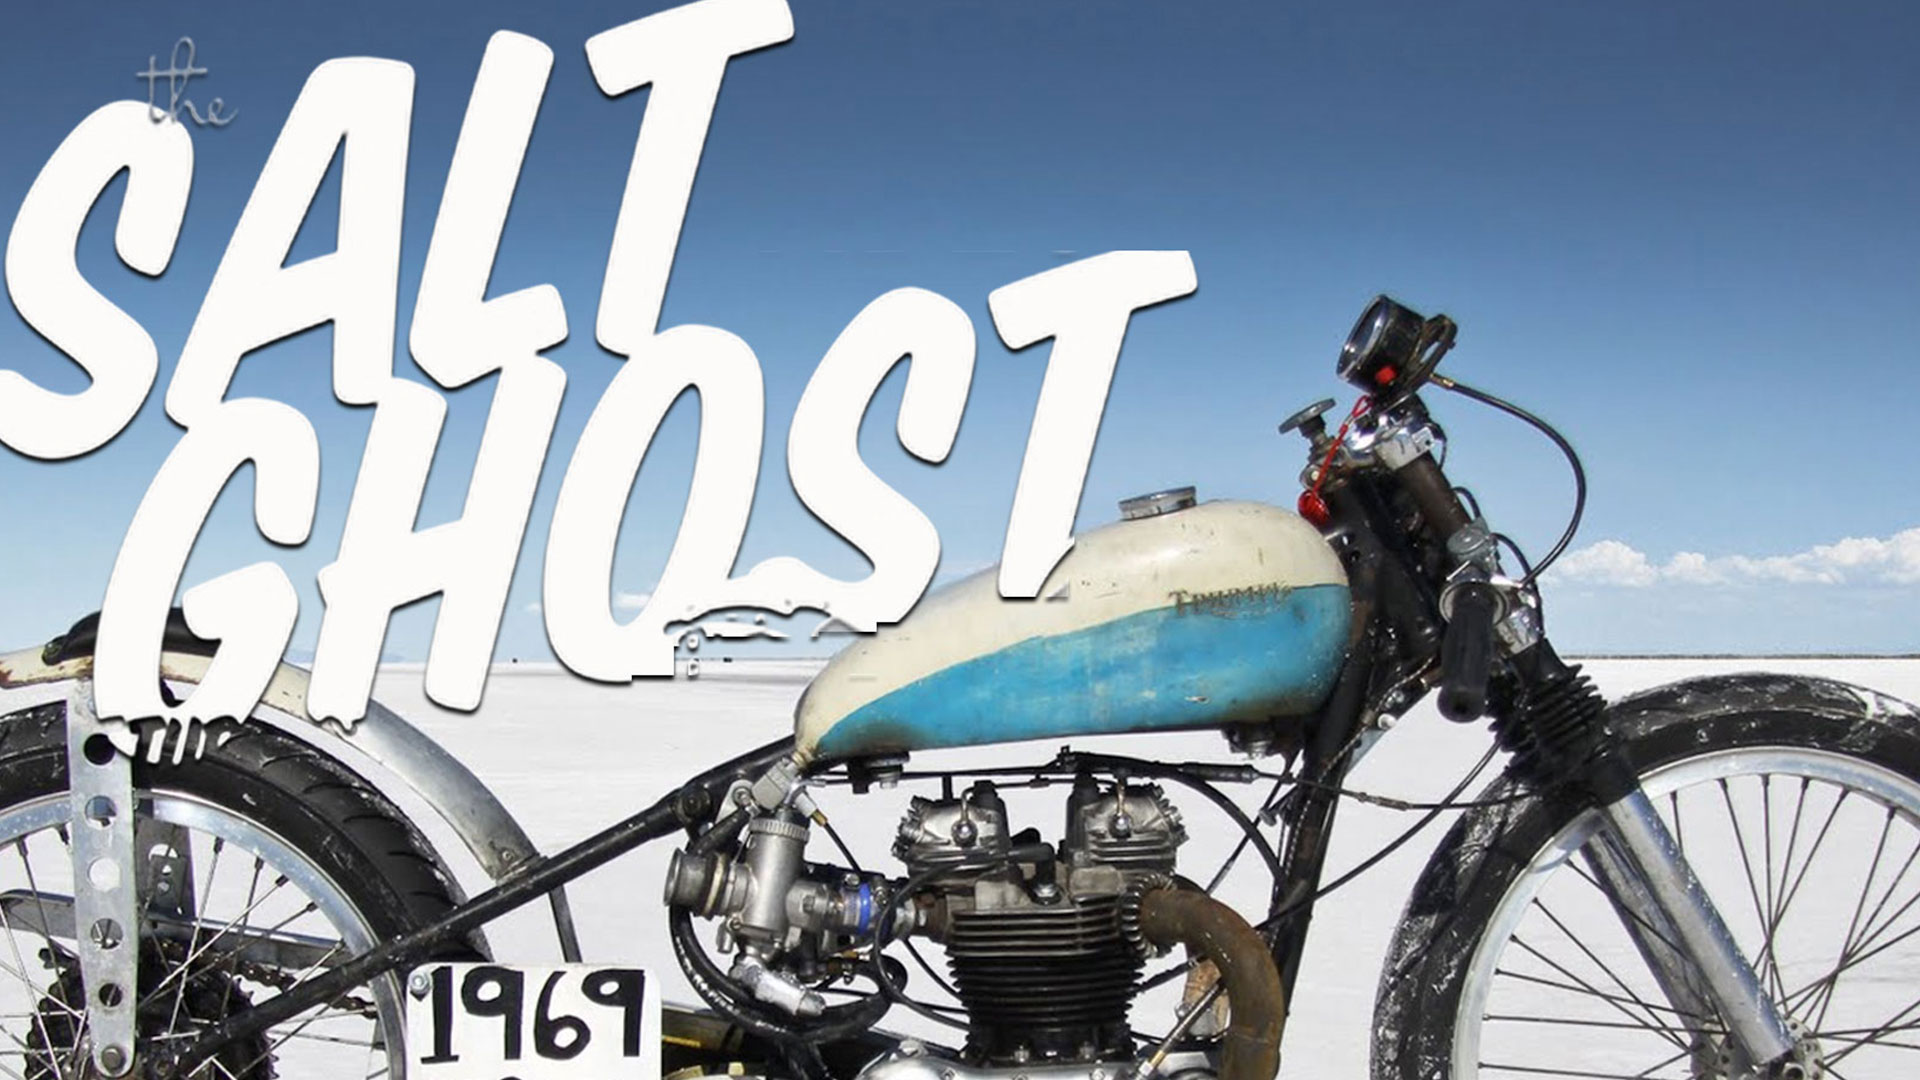 The Salt Ghost: Return of the Nitro Express